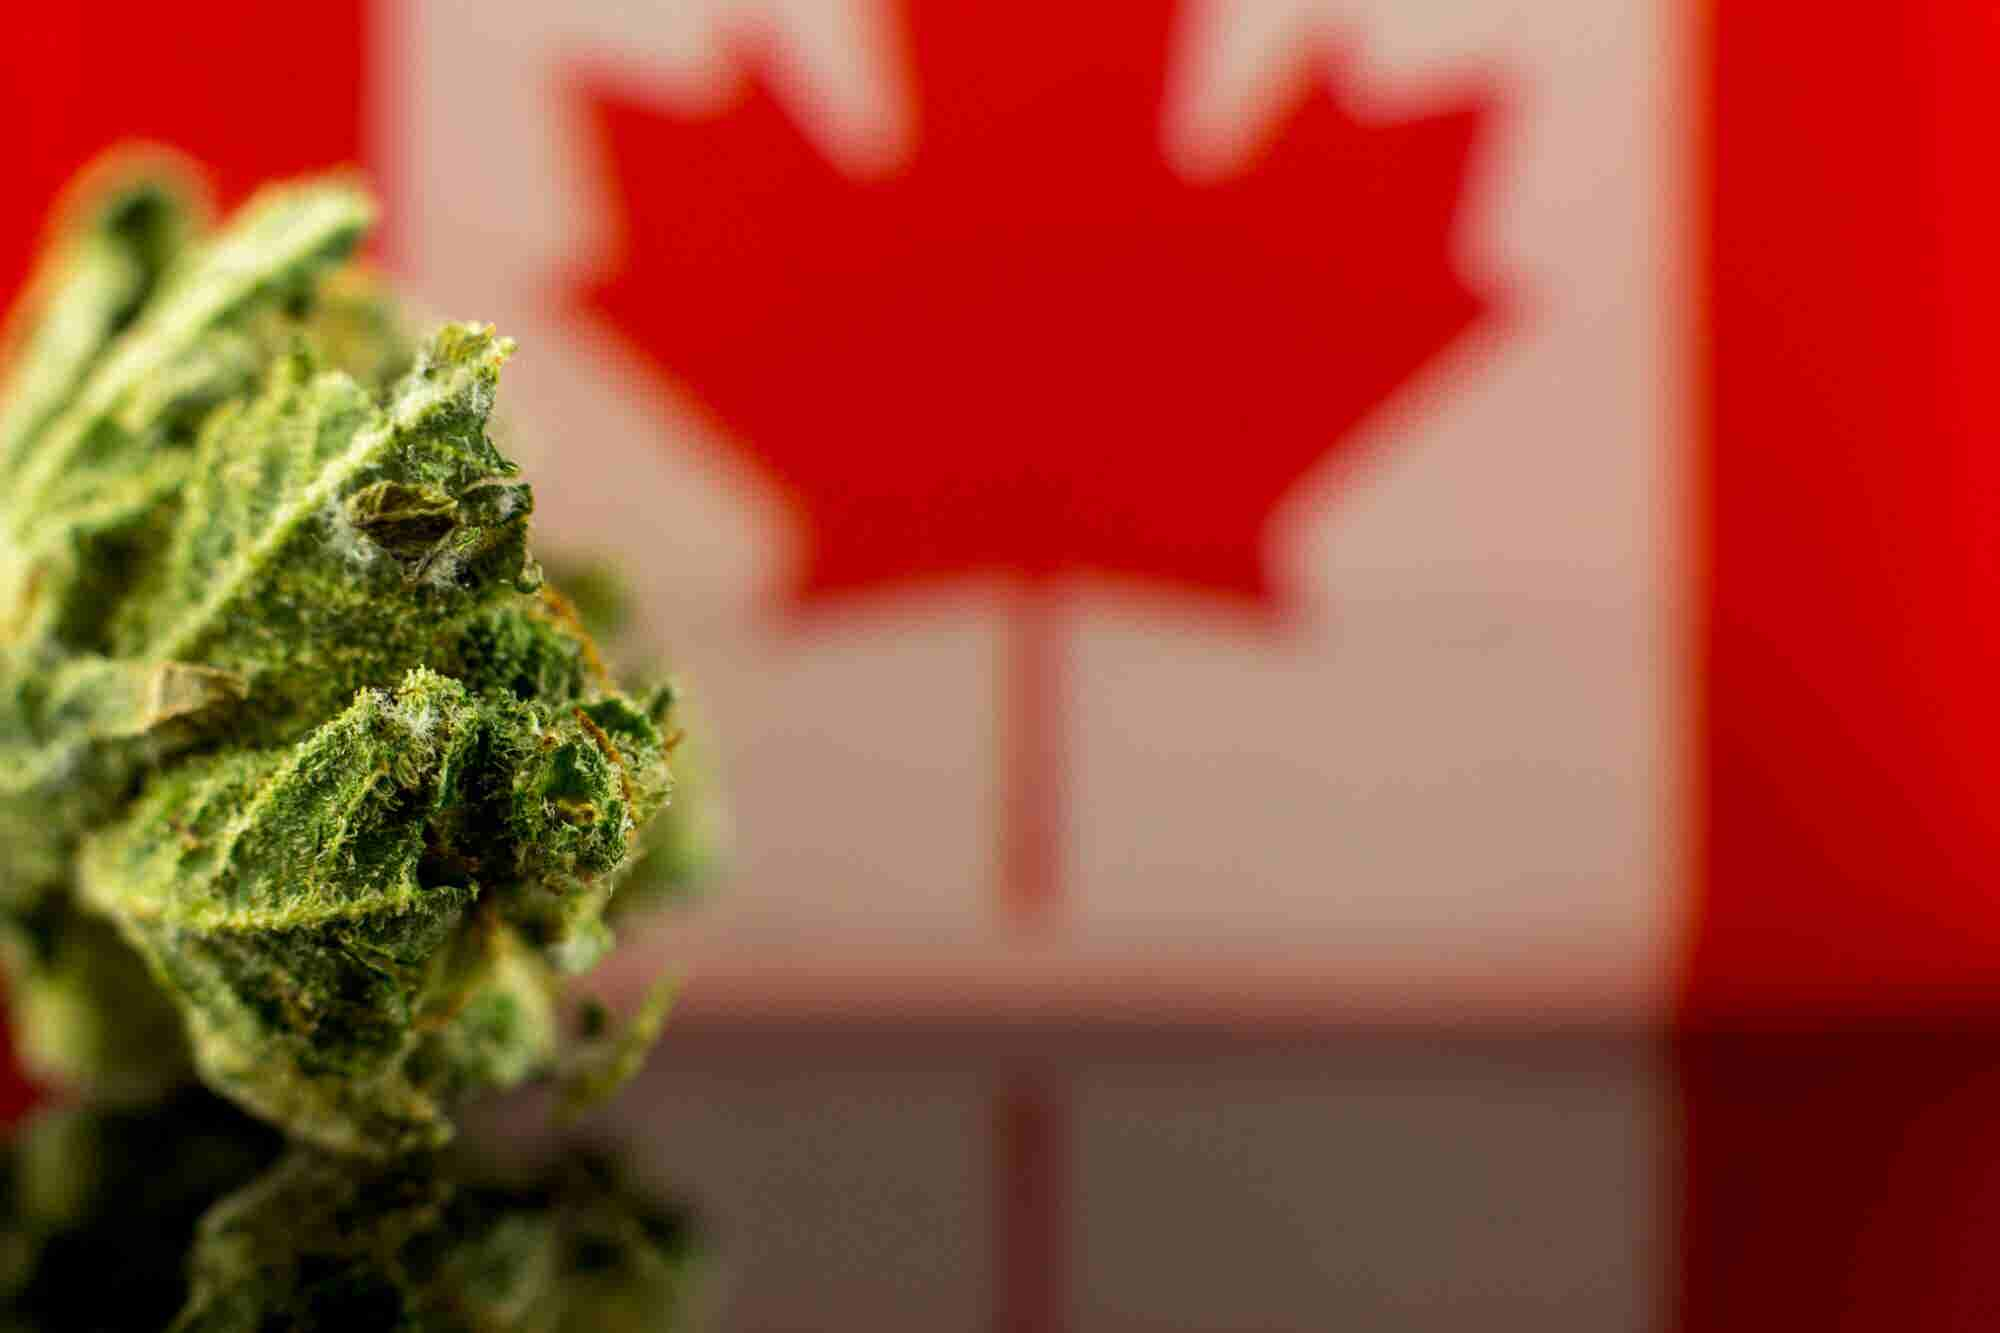 US Cannabis Leaders are Carefully Watching the Looming Canadian Wave